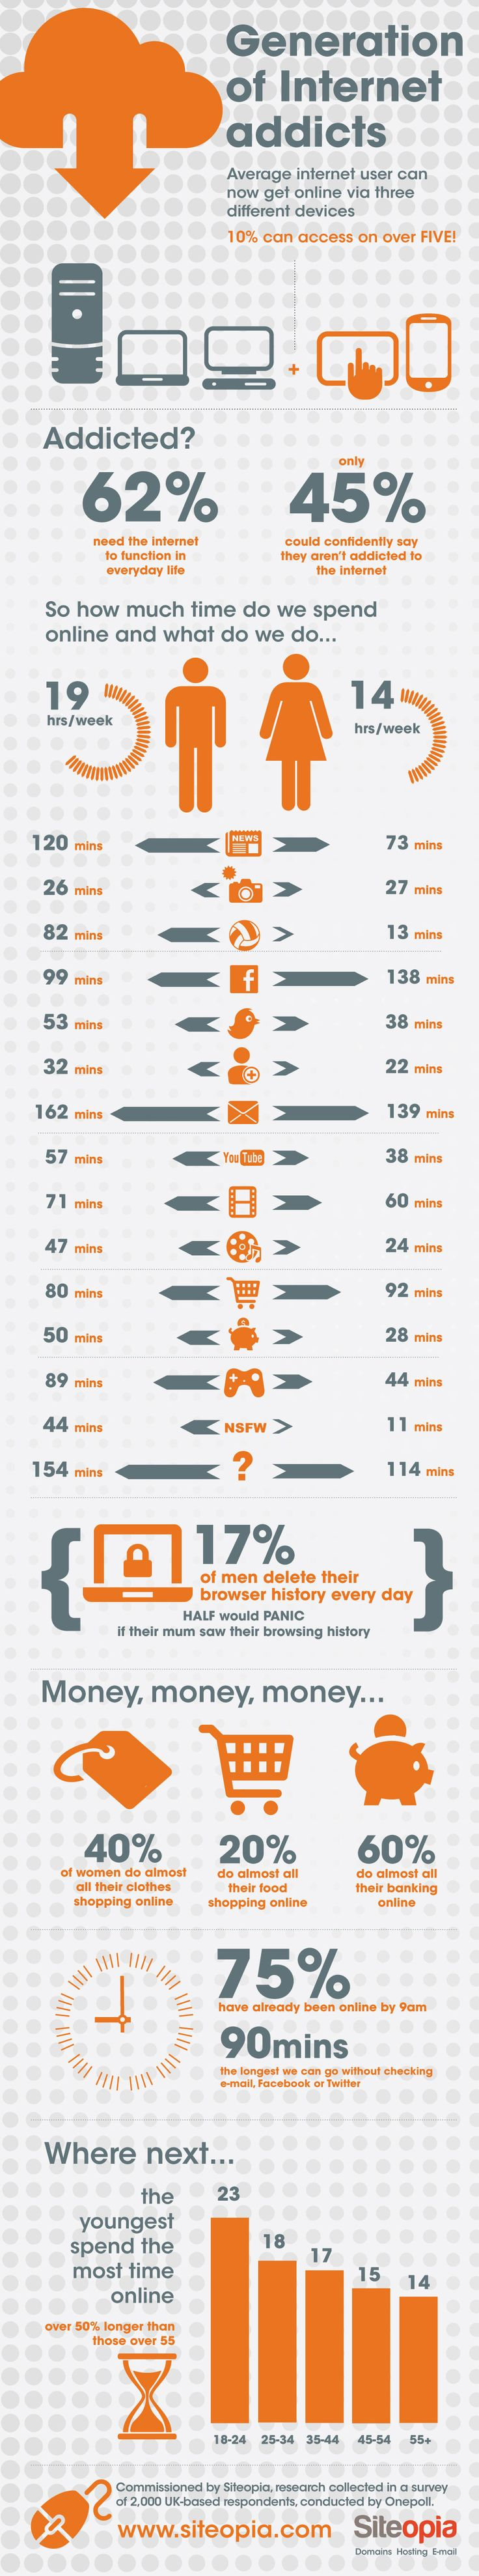 Siteopia's Online Activity Report 2013 Infographic <<< repinned by http://geistreich78.info